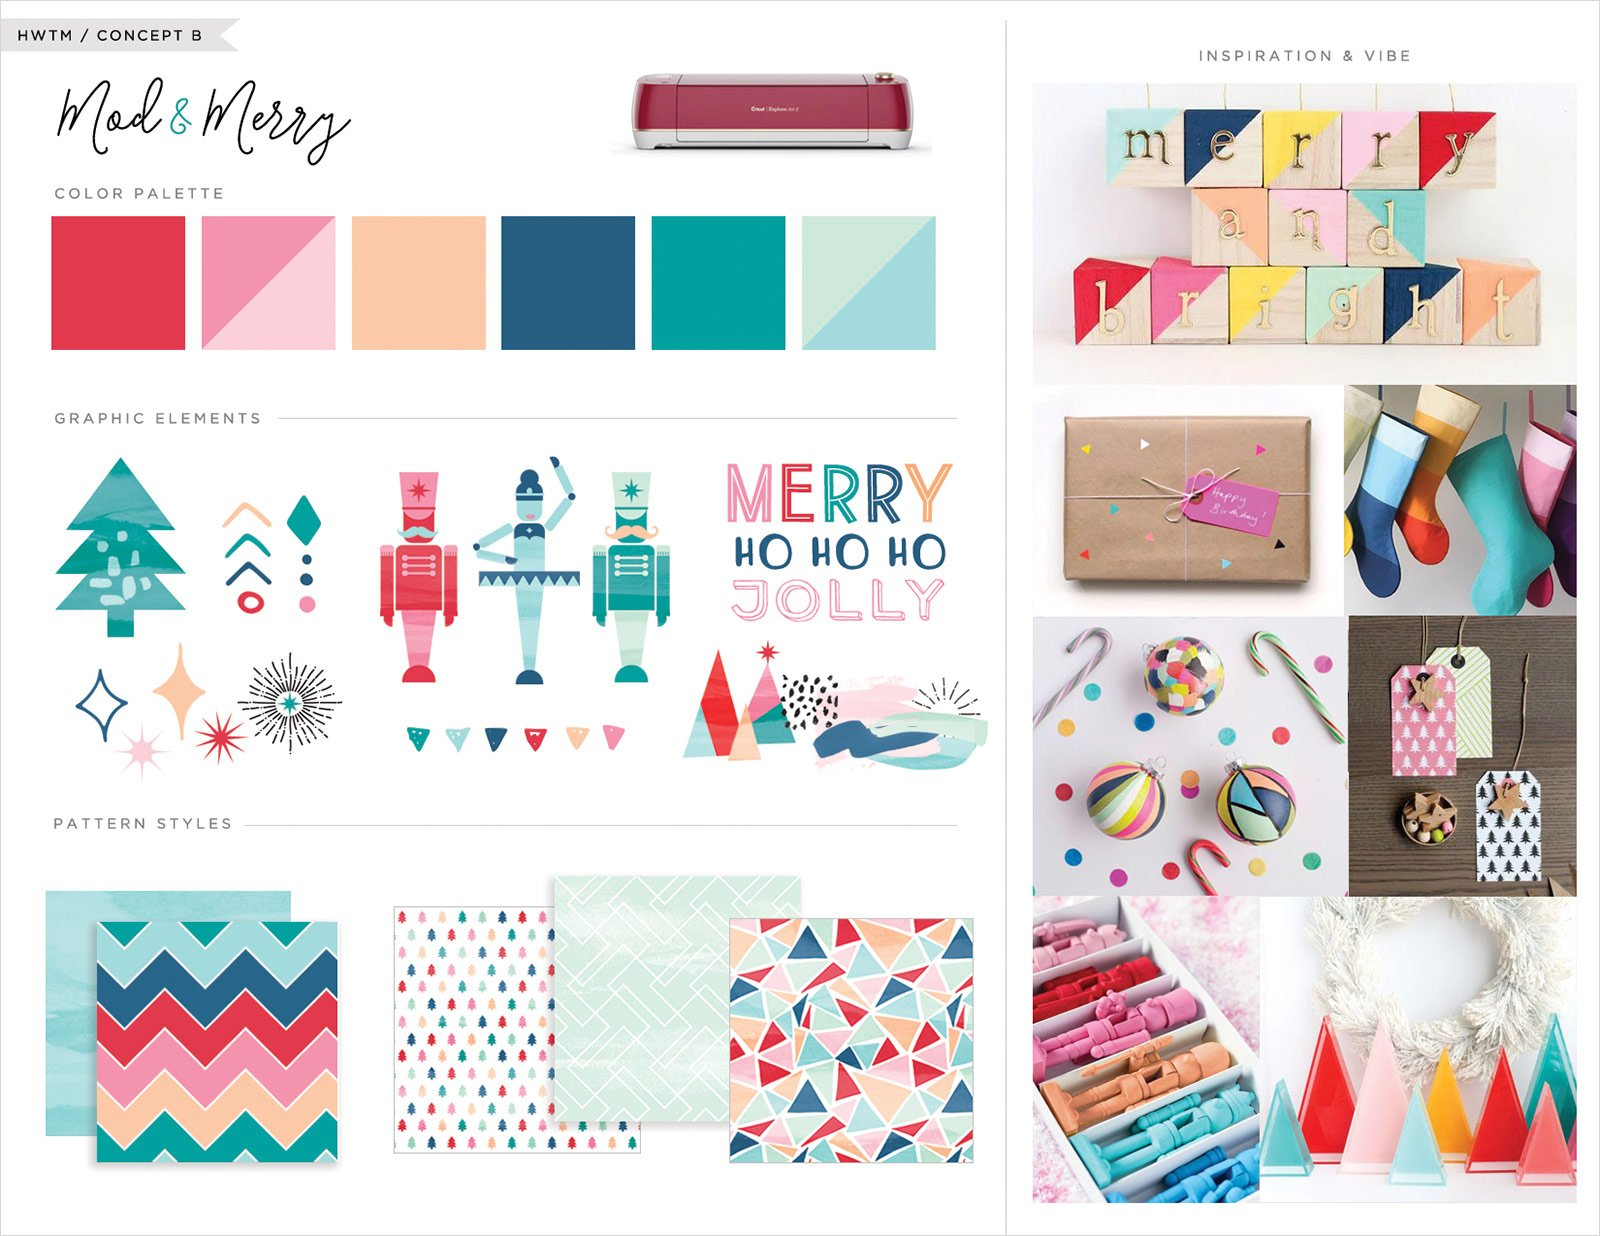 Inspiration Board - Mod and Merry Theme